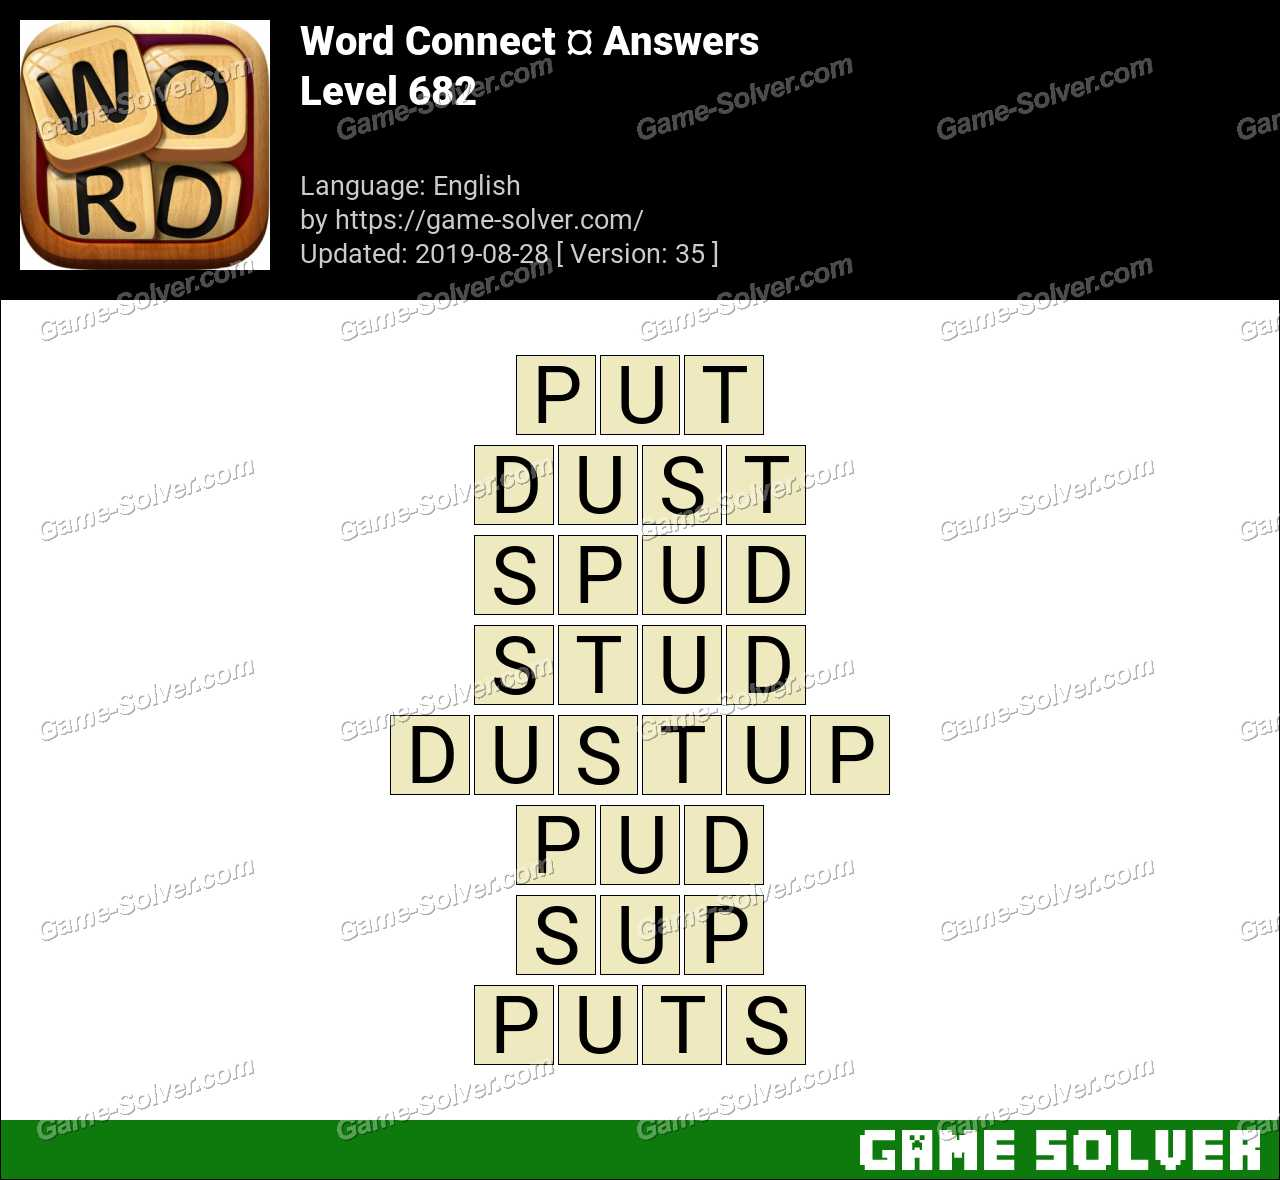 Word Connect Level 682 Answers